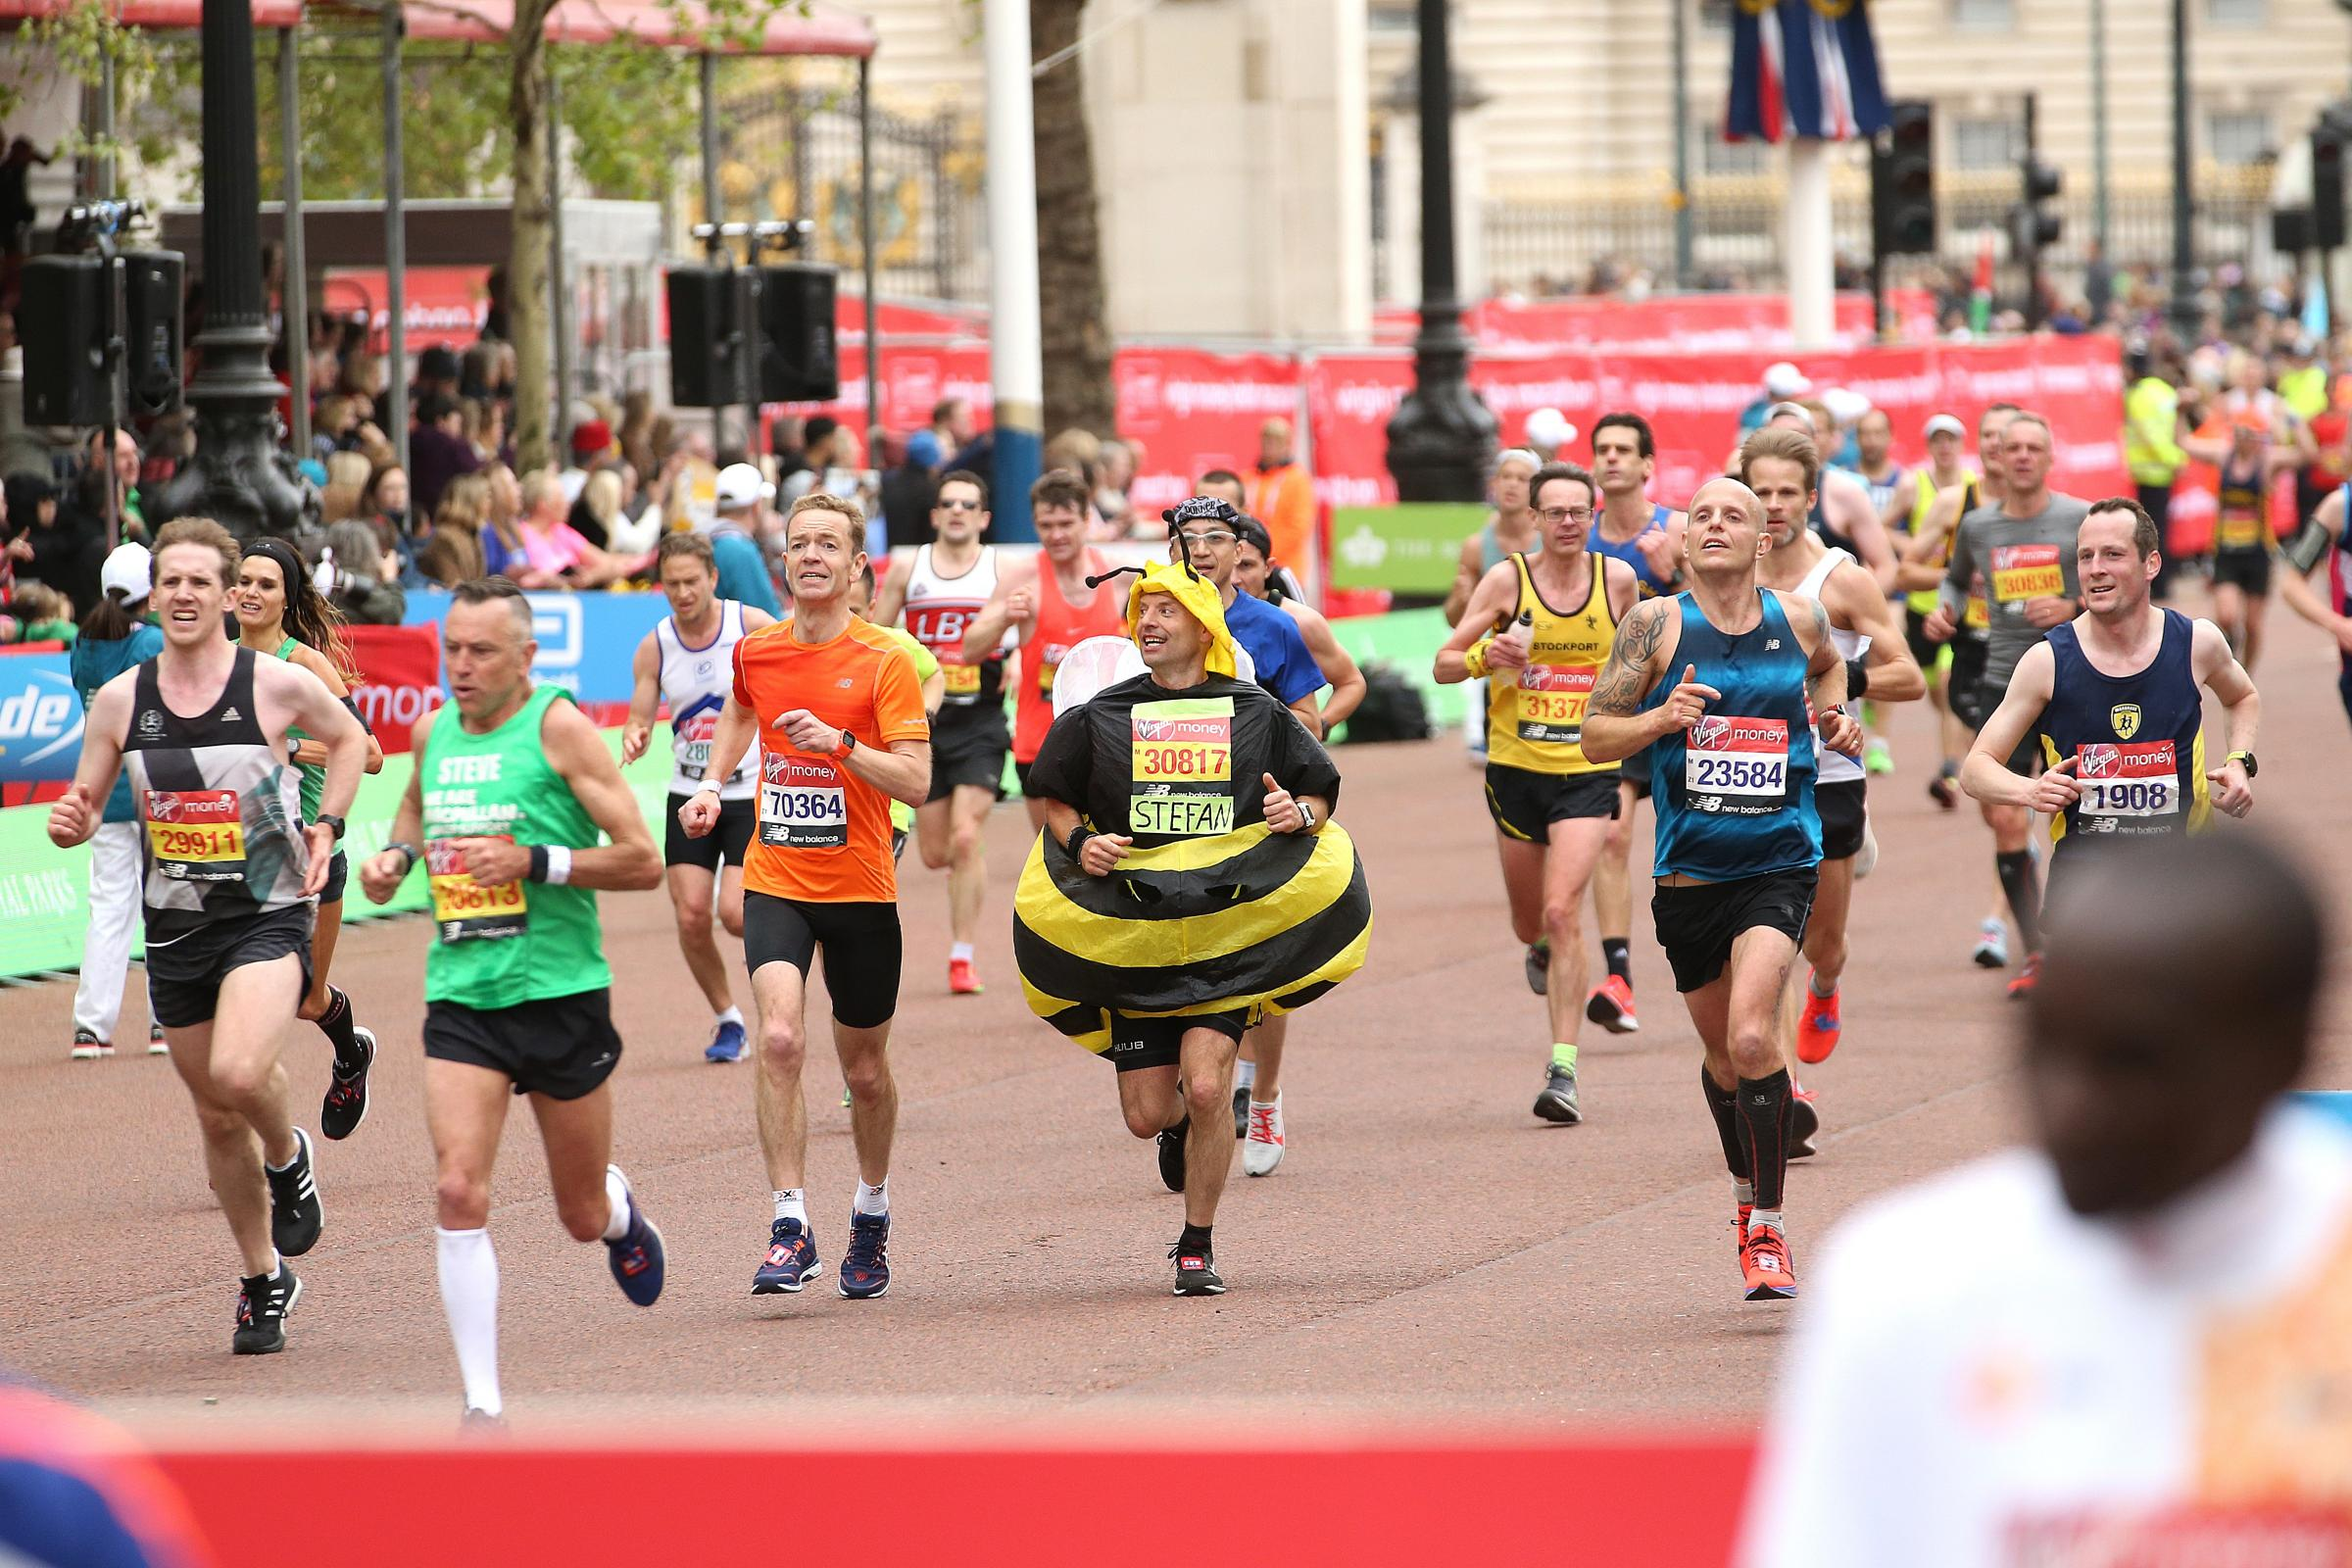 Feeling inspired? How to apply for the 2020 London Marathon